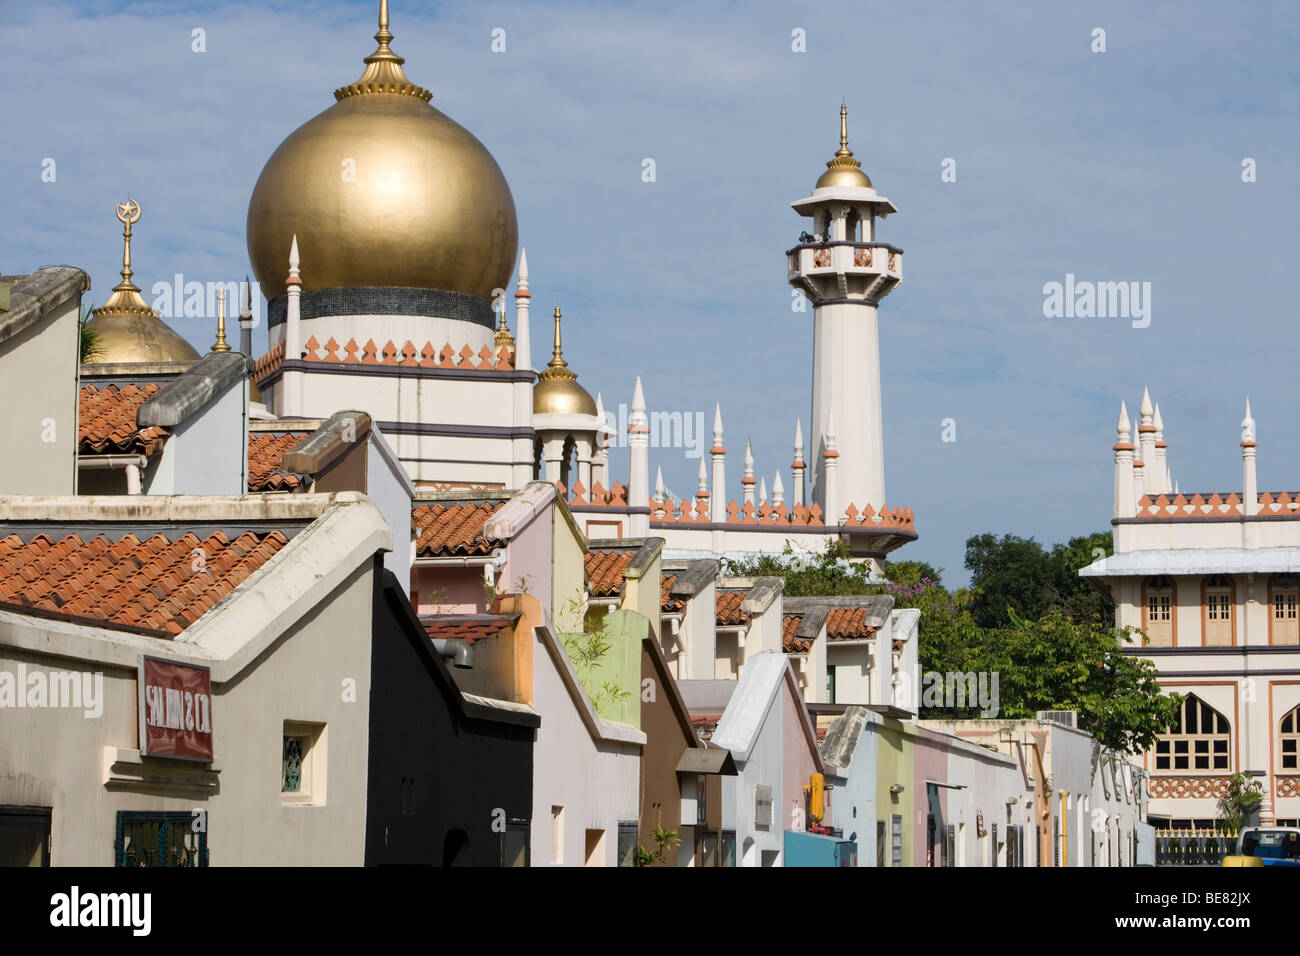 Sultan Mosque in Kampong Glam District, Singapore, Asia - Stock Image